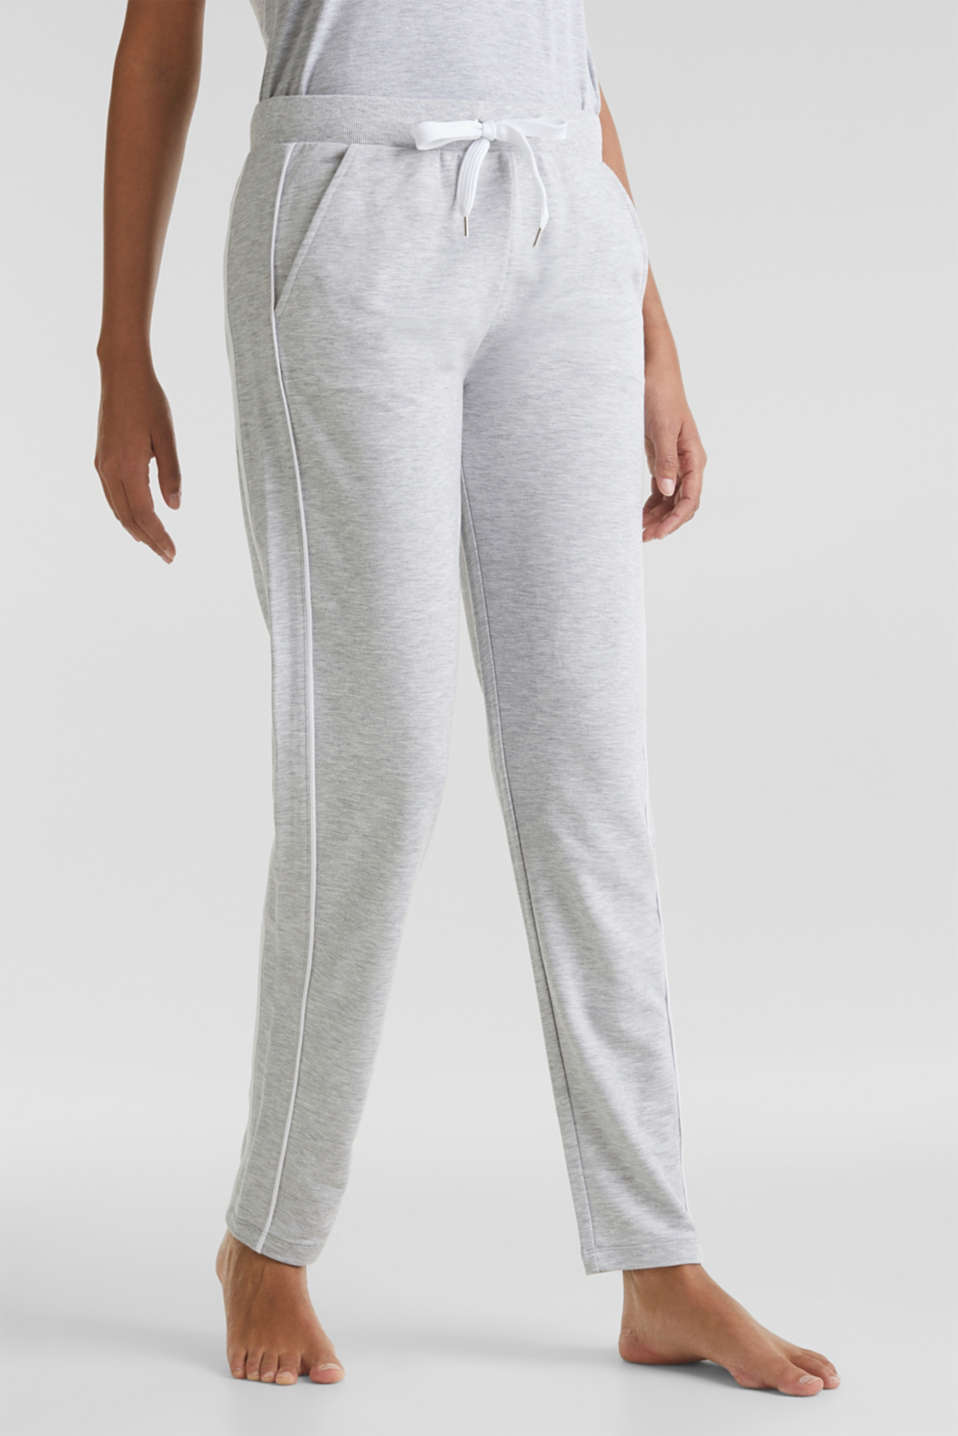 Esprit - Pantalon en jersey stretch chiné